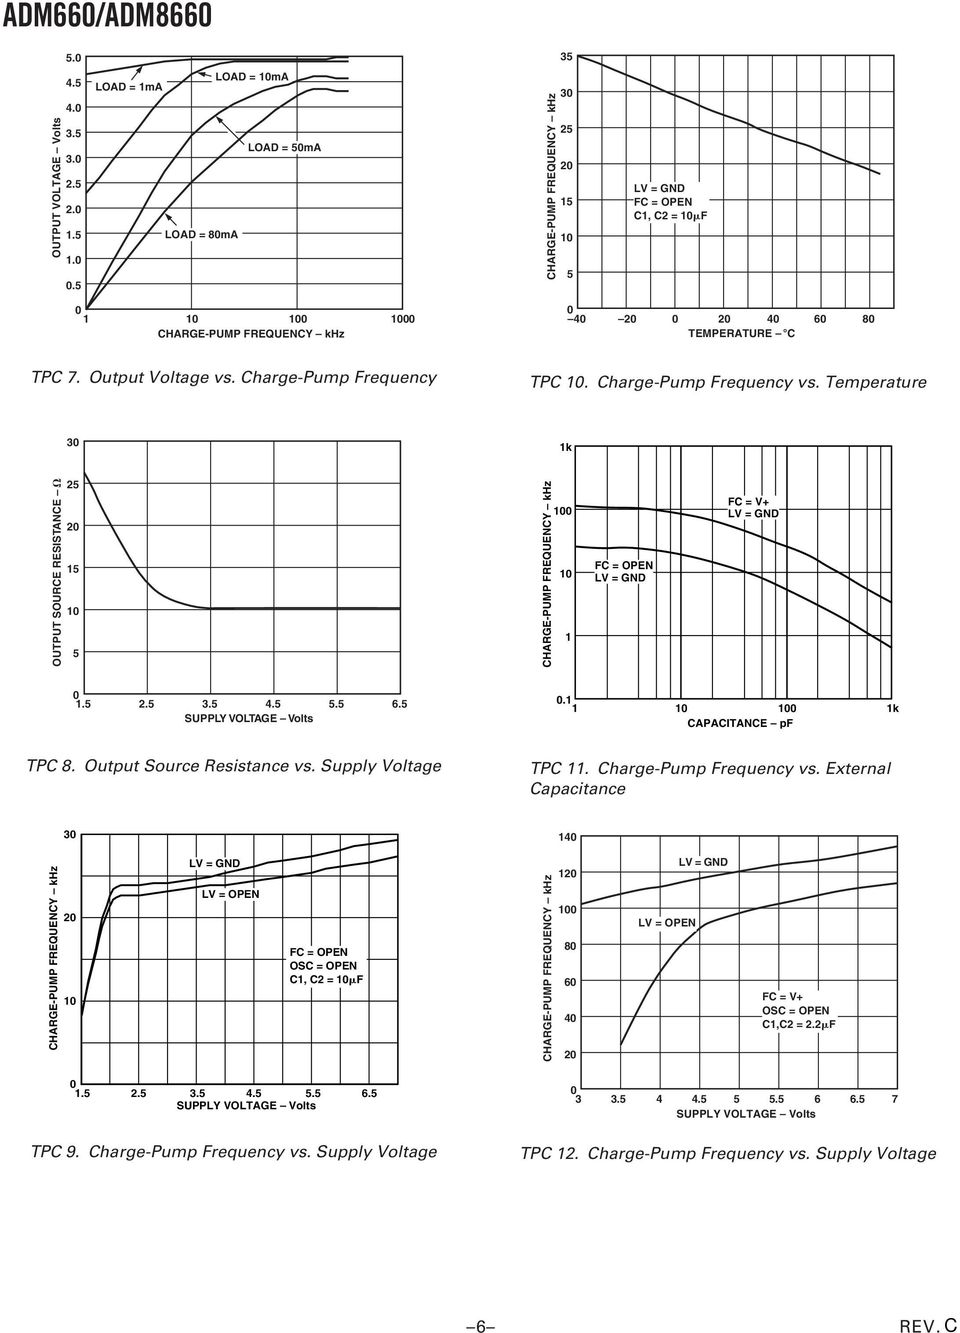 k CAPACITANCE pf TPC 8. Output Source Resistance vs. Supply Voltage TPC. Charge-Pump Frequency vs.